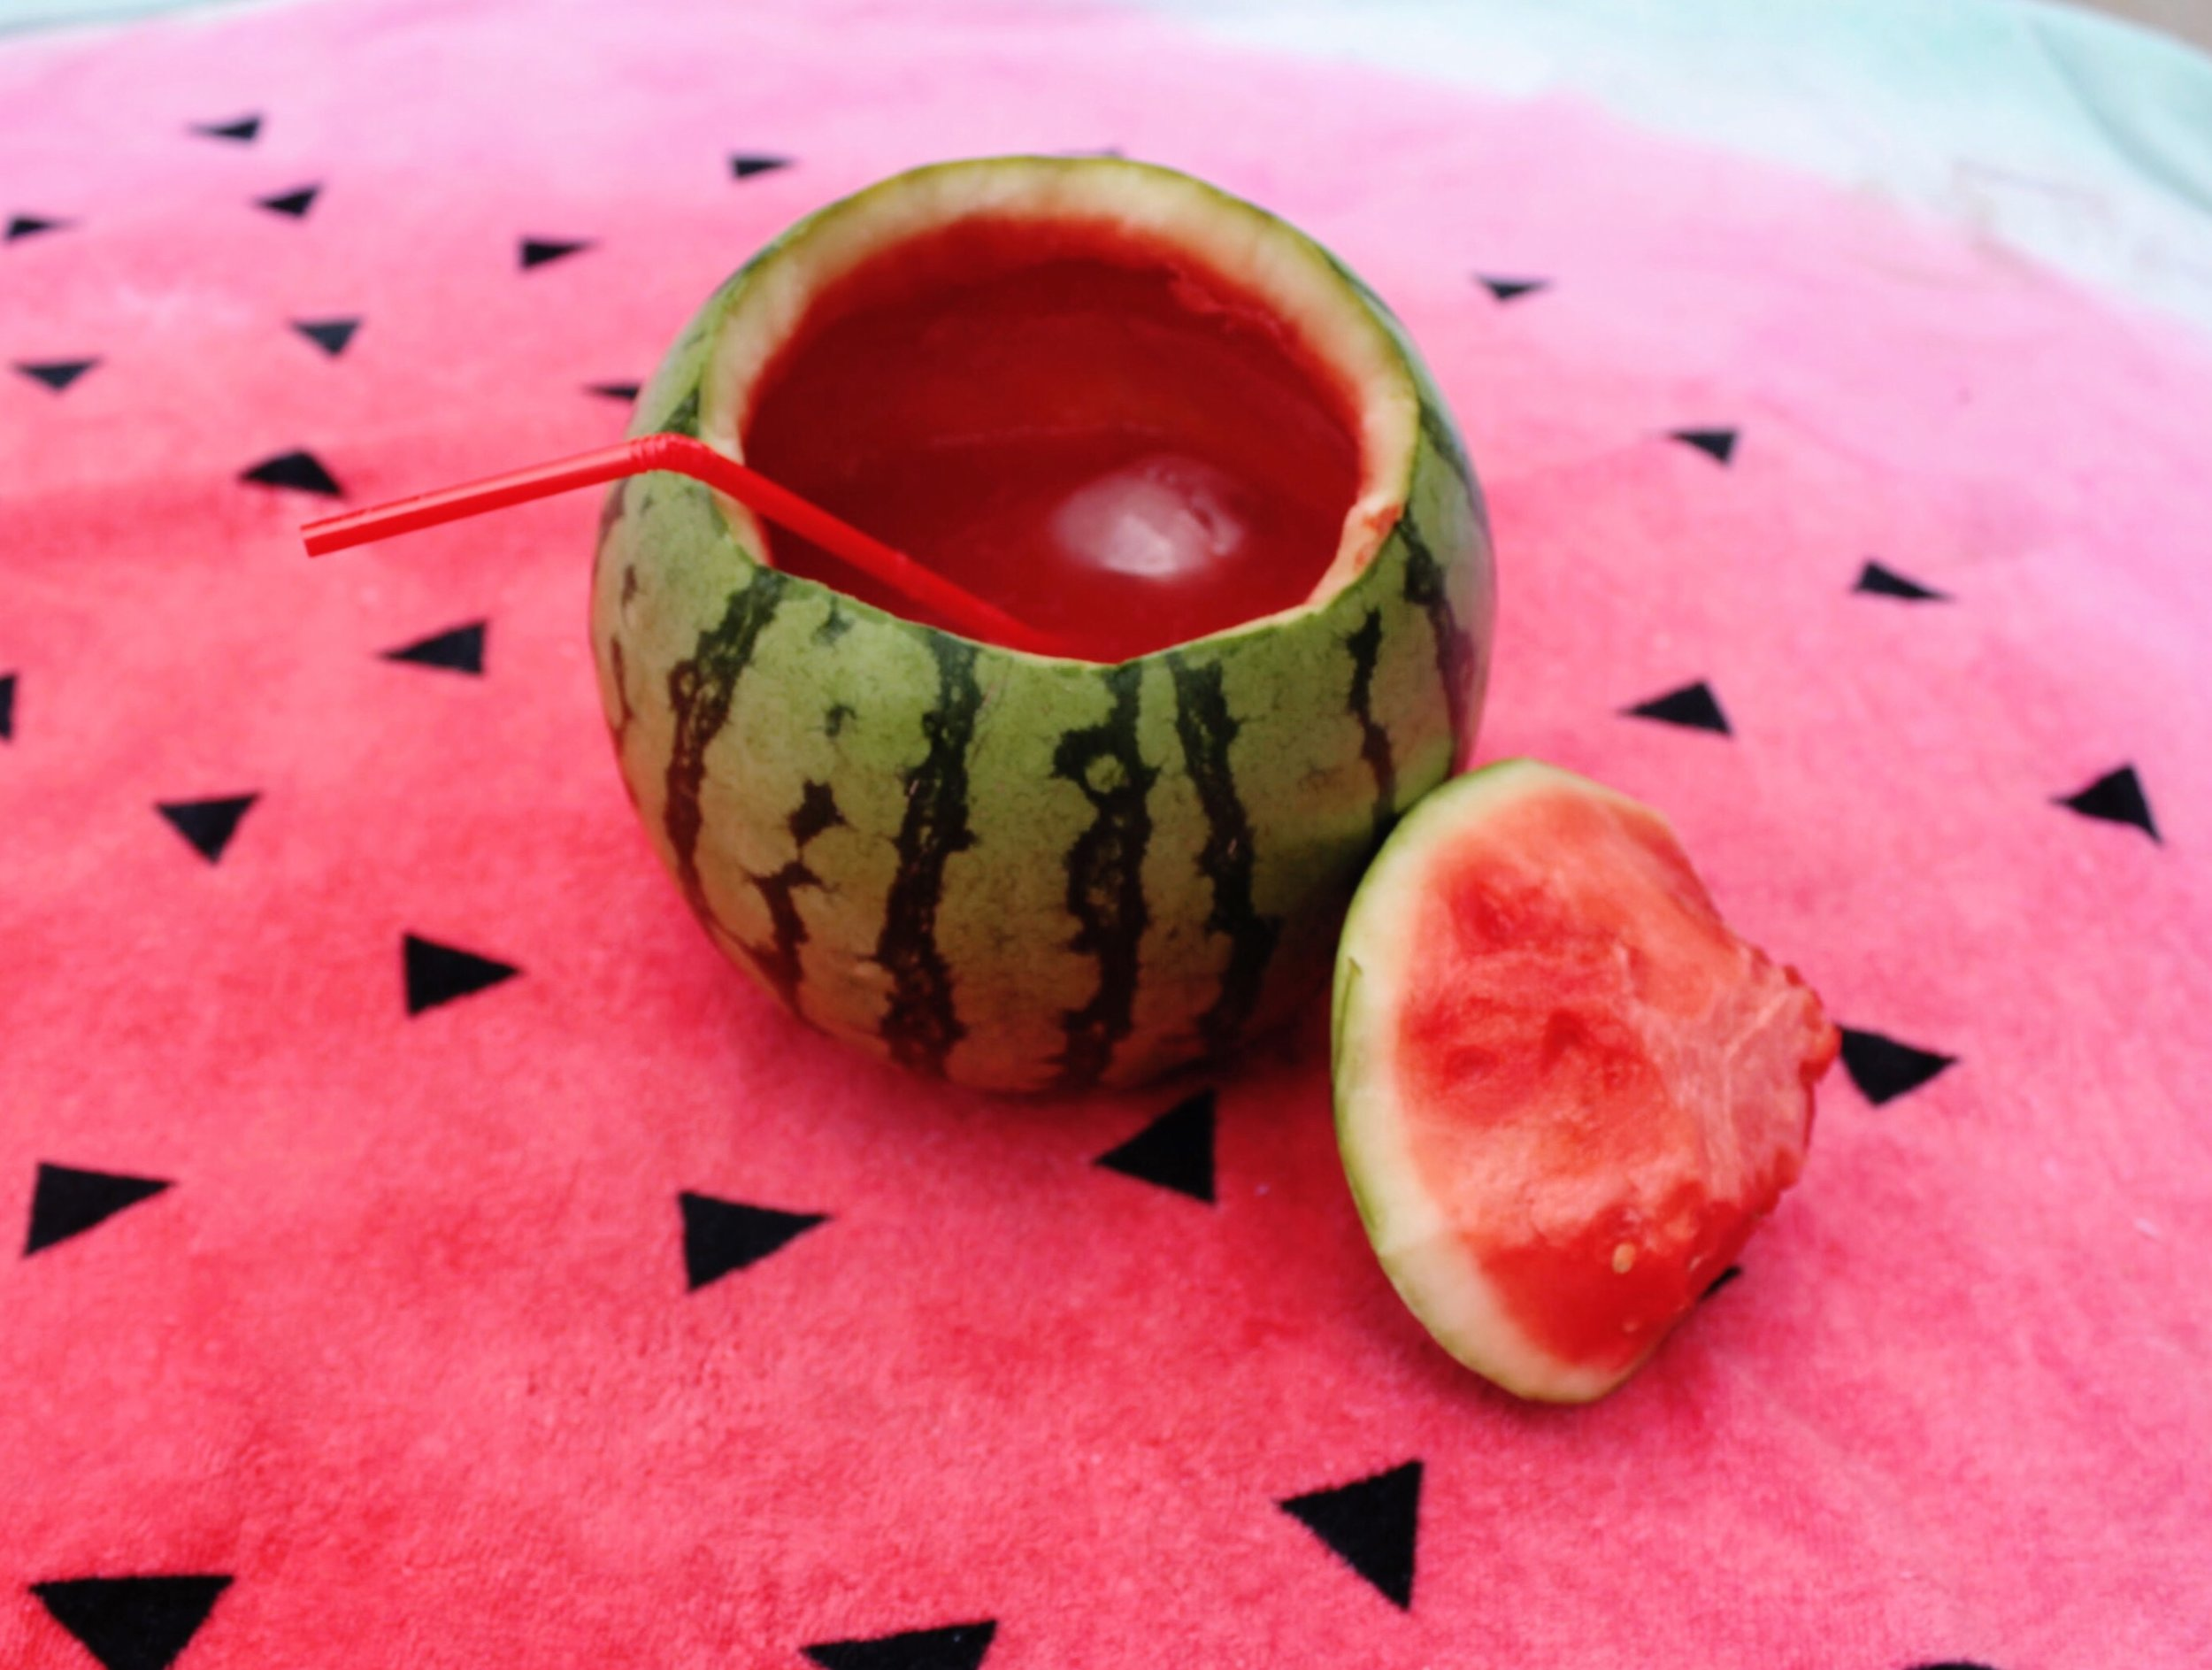 Watermelon Mini Alcoholic Beverage made with Tequila.